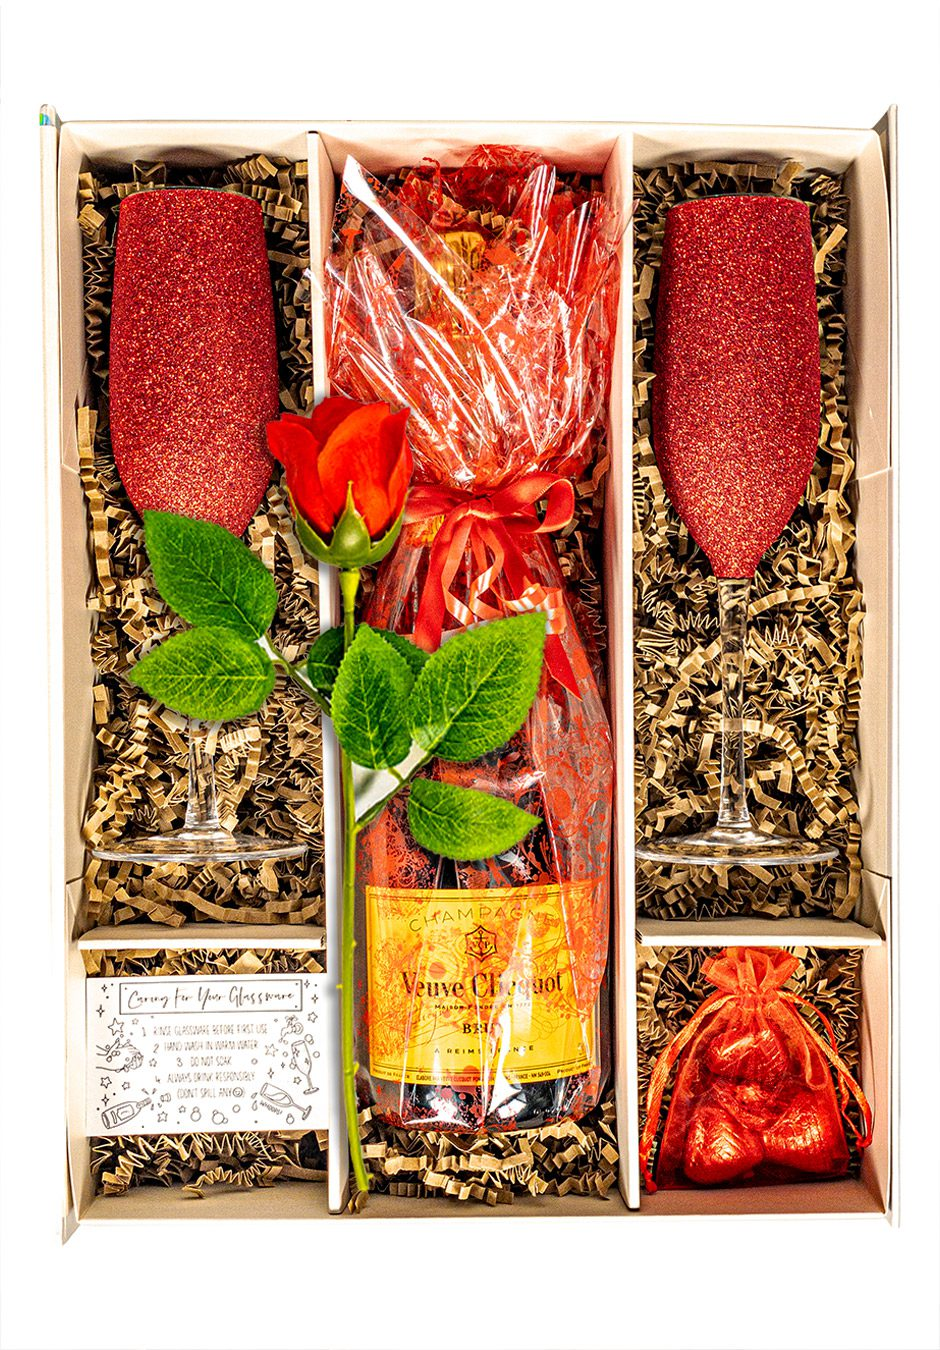 Veuve Clicquot Champagne 75cl   Sparkleware Gift Set   Chocolates & Rose   Keico Drinks